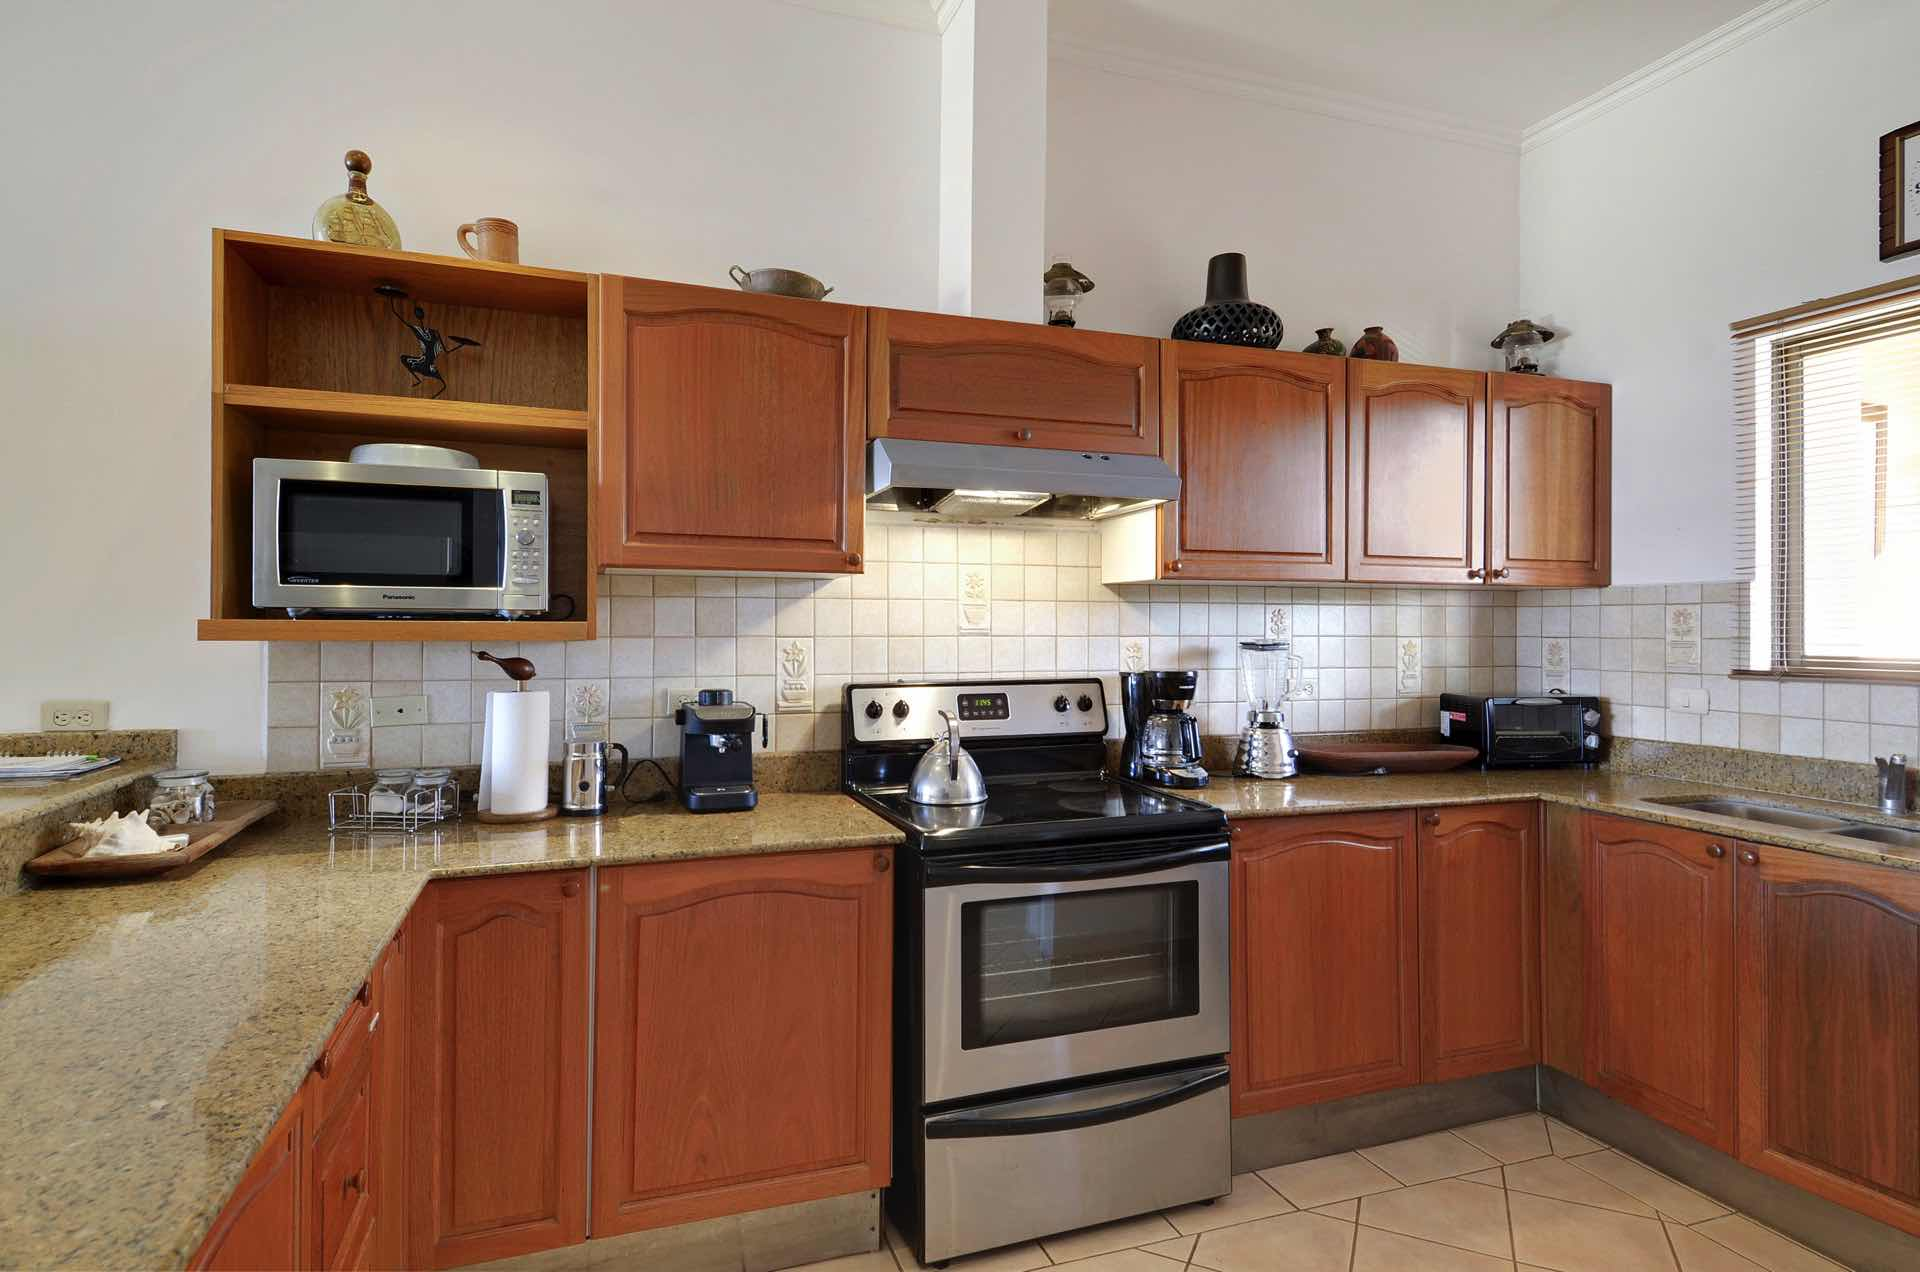 Kitchen with high quality appliances